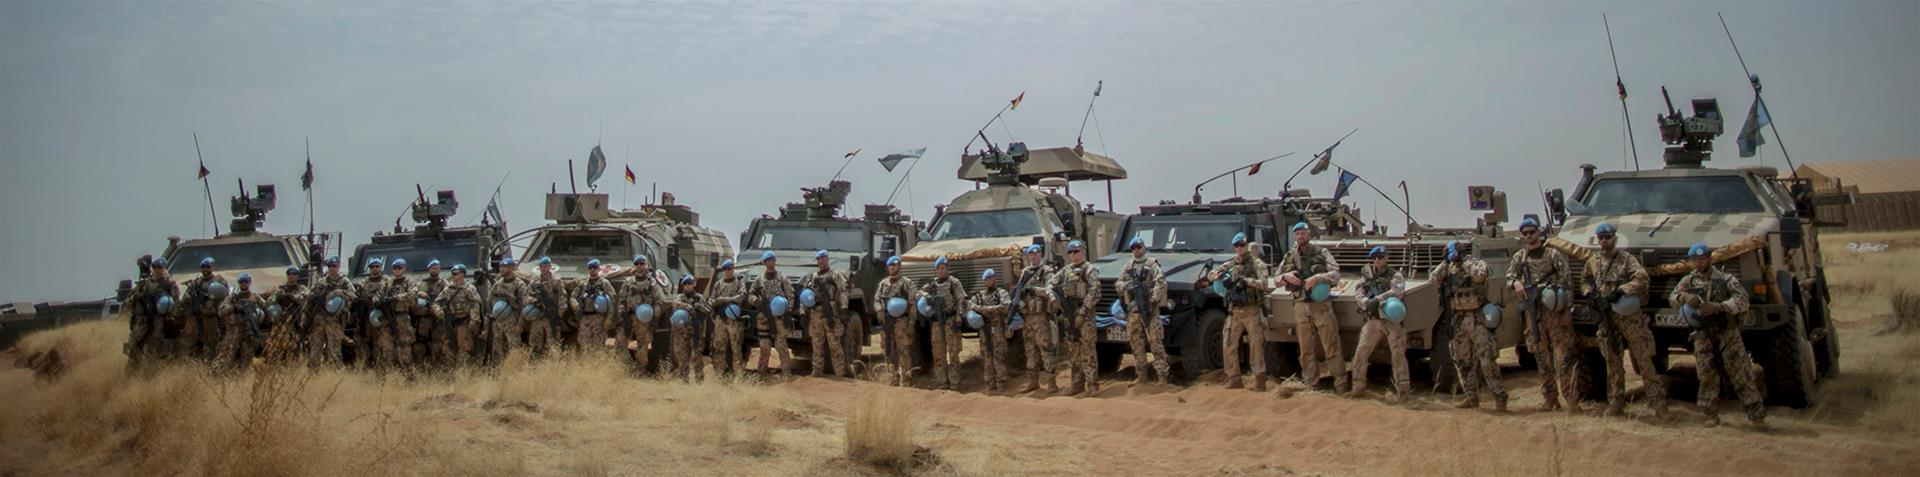 Mali is said to be the most dangerous active deployment for UN troops [Michael Kappeler/EPA]